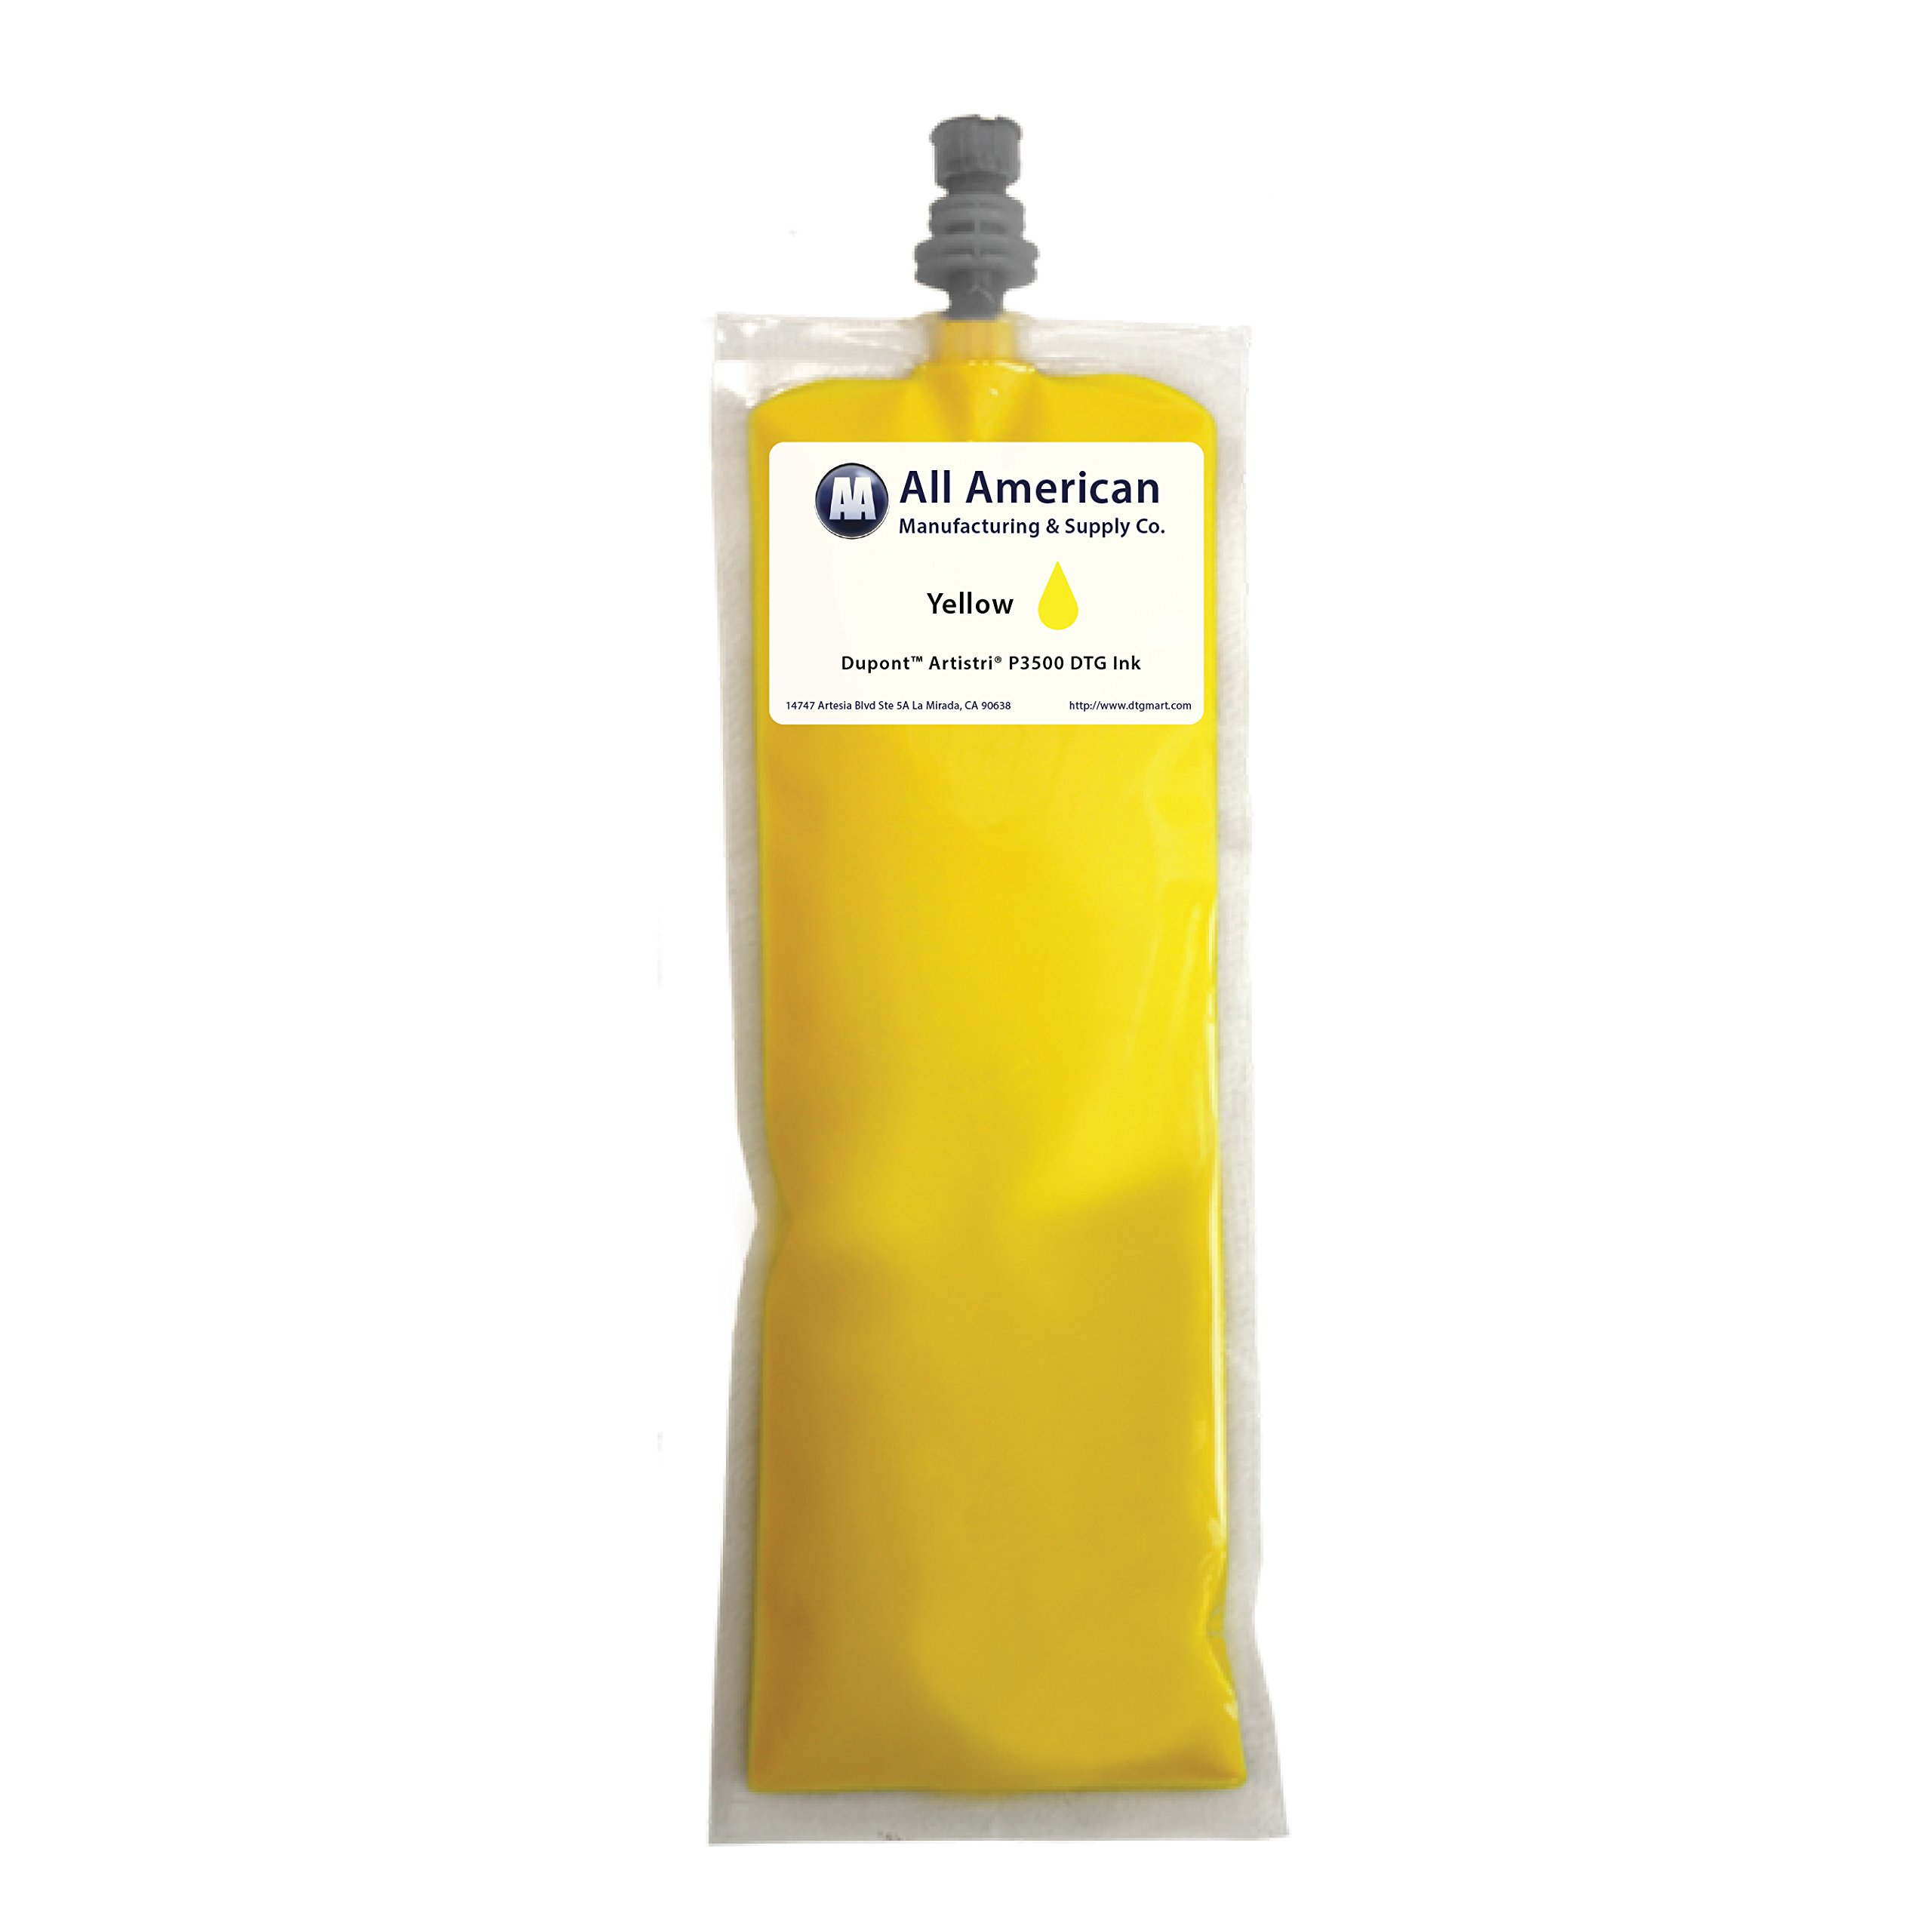 DTG Ink 220ml DuPont P3500 Series Same as Power Bright Ink for mP5 and mP10 (Yellow)